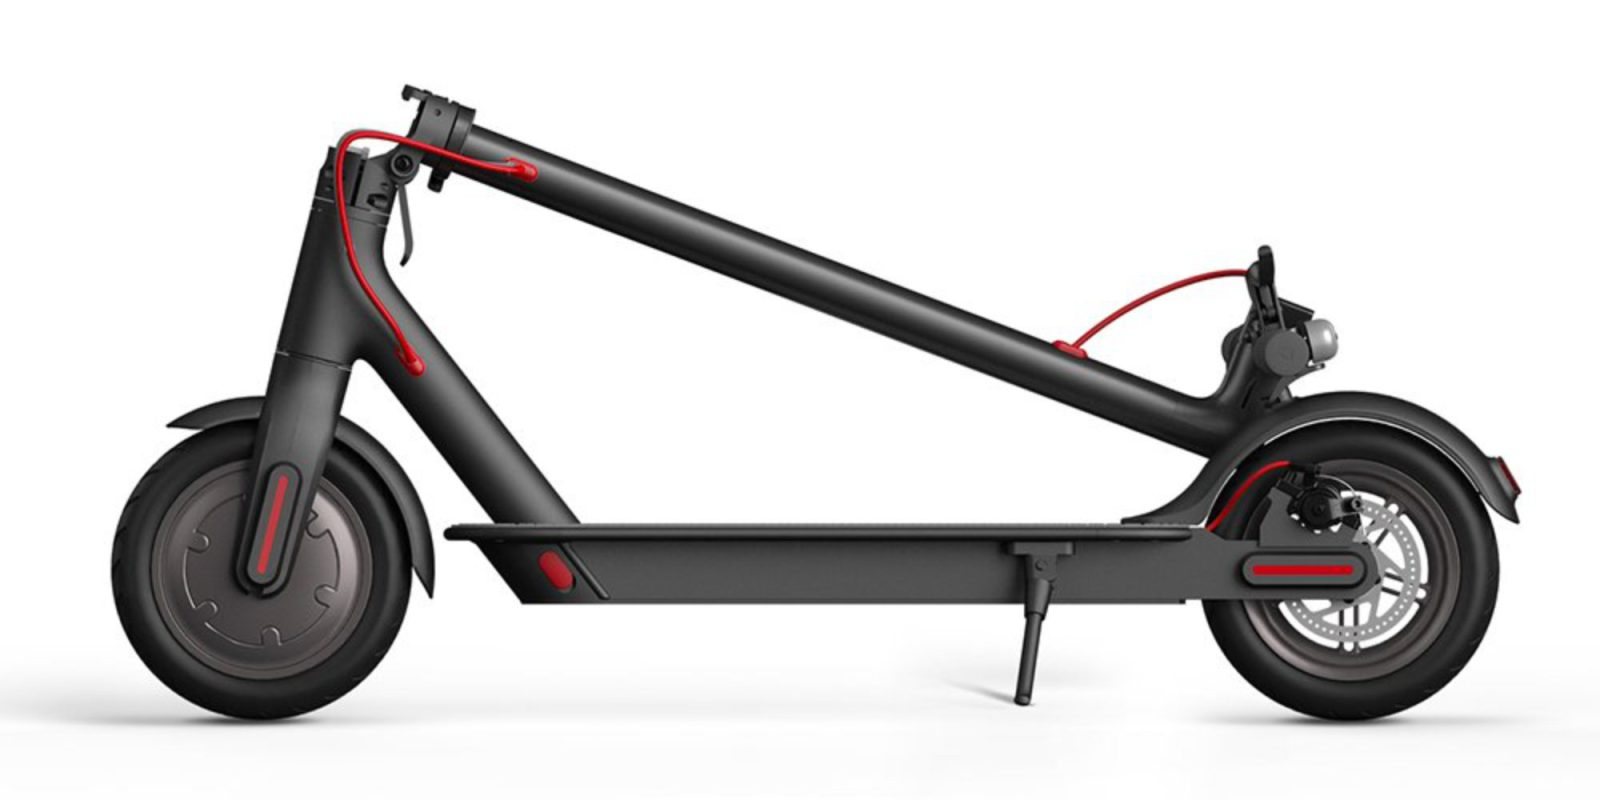 Xiaomi Mi Electric Scooter hits new all-time low at $340 (Reg. $500)